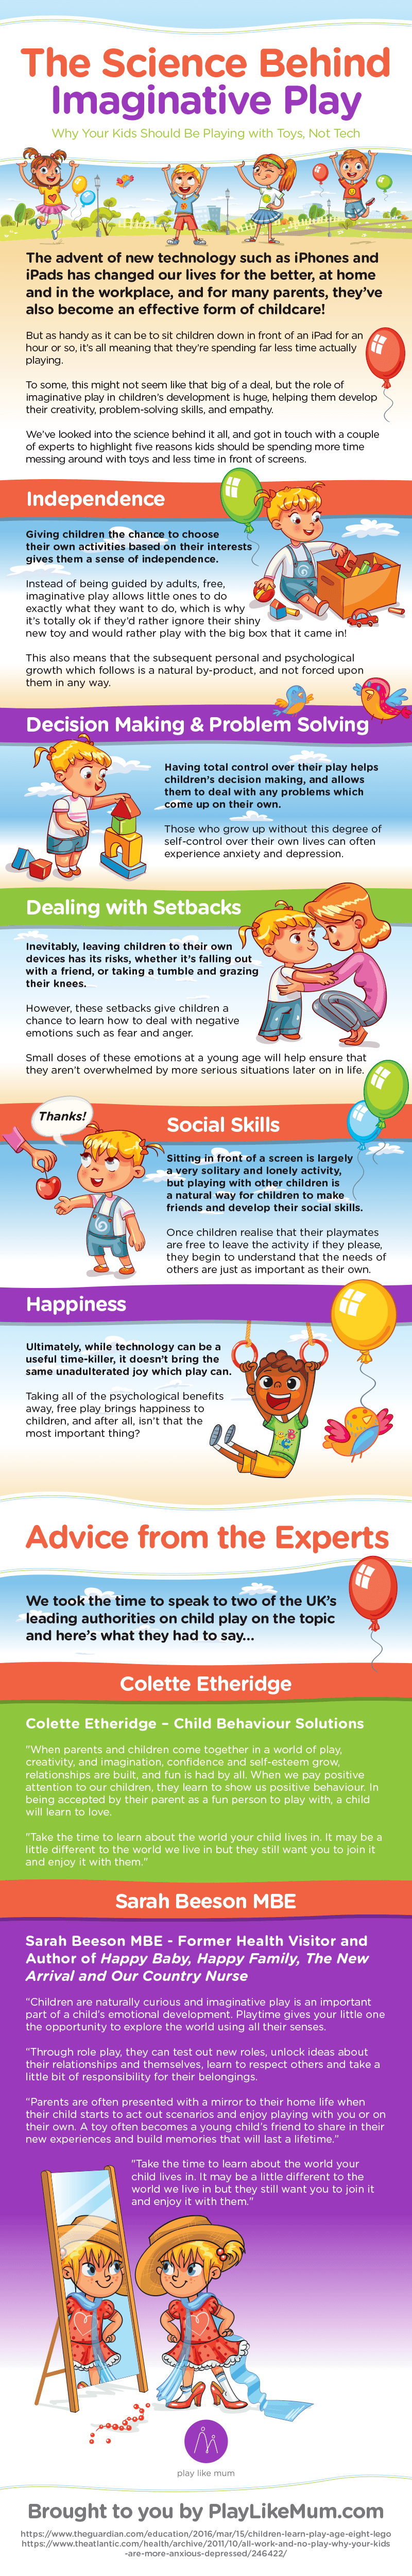 The Science Behind Imaginative Play Infographic